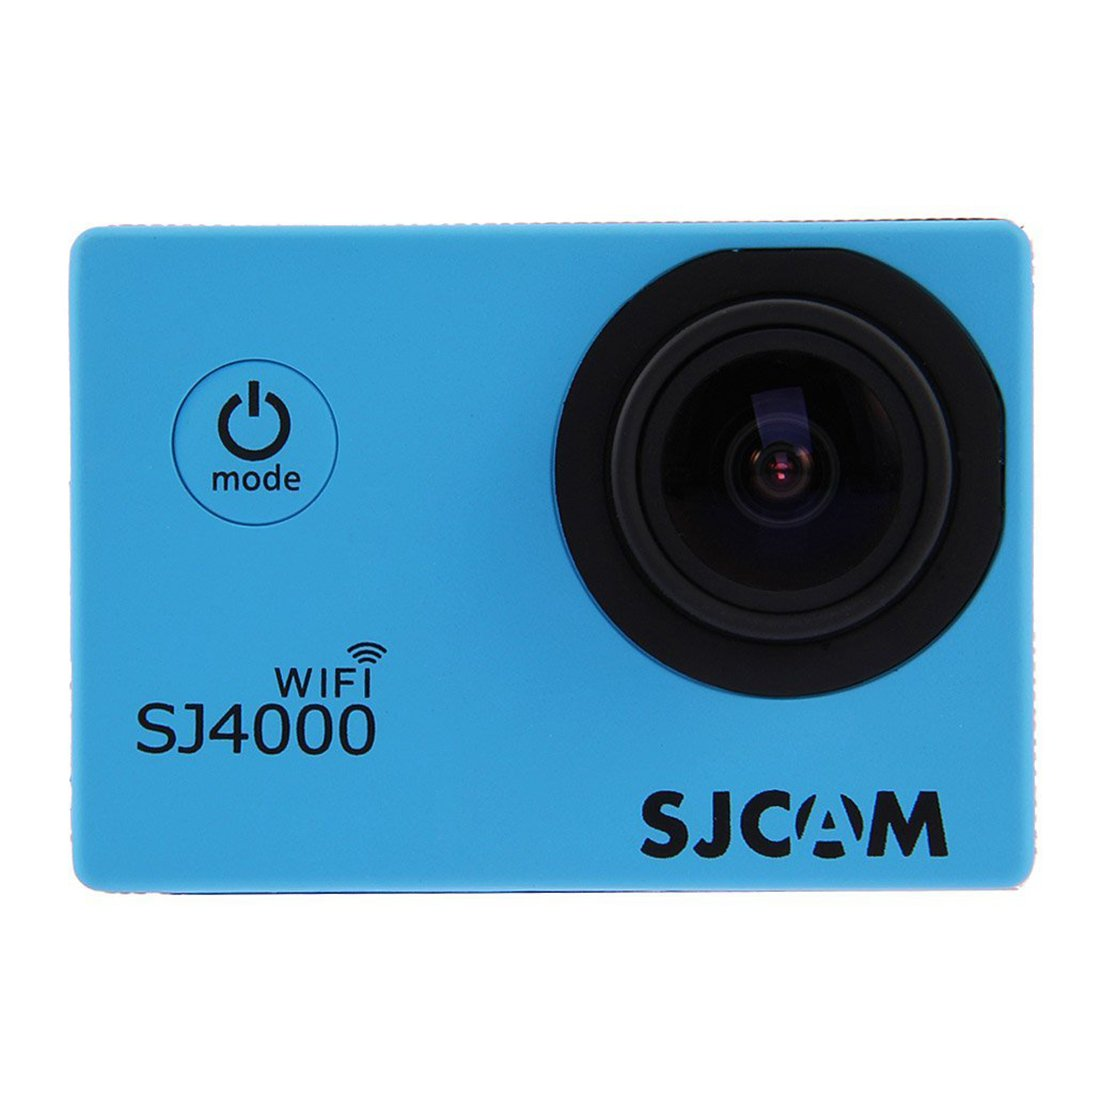 SJCAM Original SJ4000 WiFi Action Camera 12MP 1080P H.264 1.5 Inch 170° Wide Angle Lens Waterproof Diving HD Camcorder Car DVR with Free Makibes Cleaning Cloth (Blue)